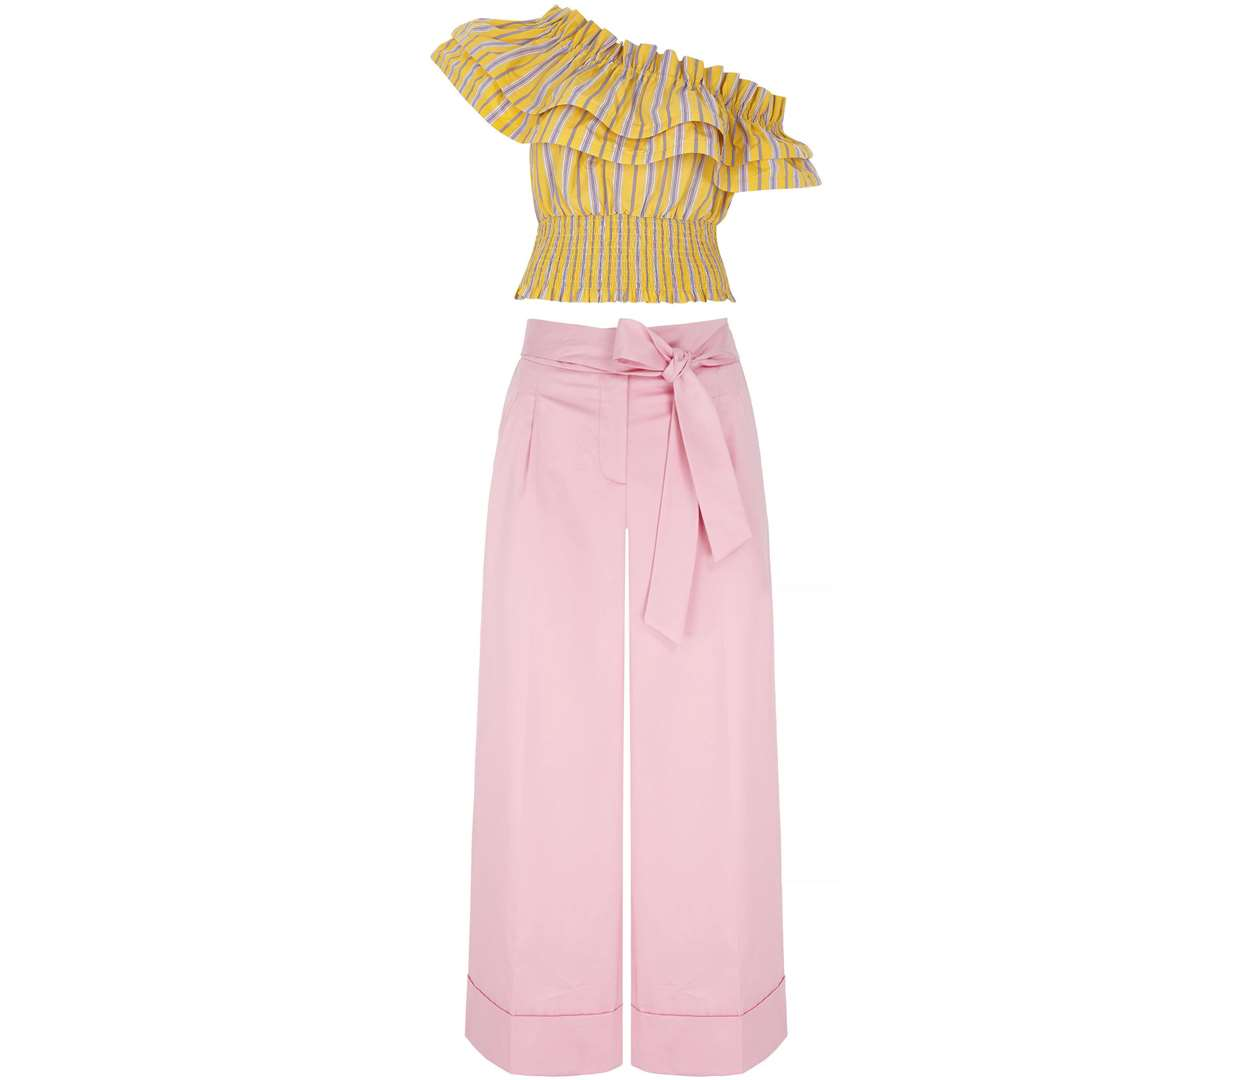 1. TROUSERS River Island Yellow Stripe One Shoulder Shirred Crop Top, £15 (reduced from £35); V by Very Pink Wide Crop Trouser, £28